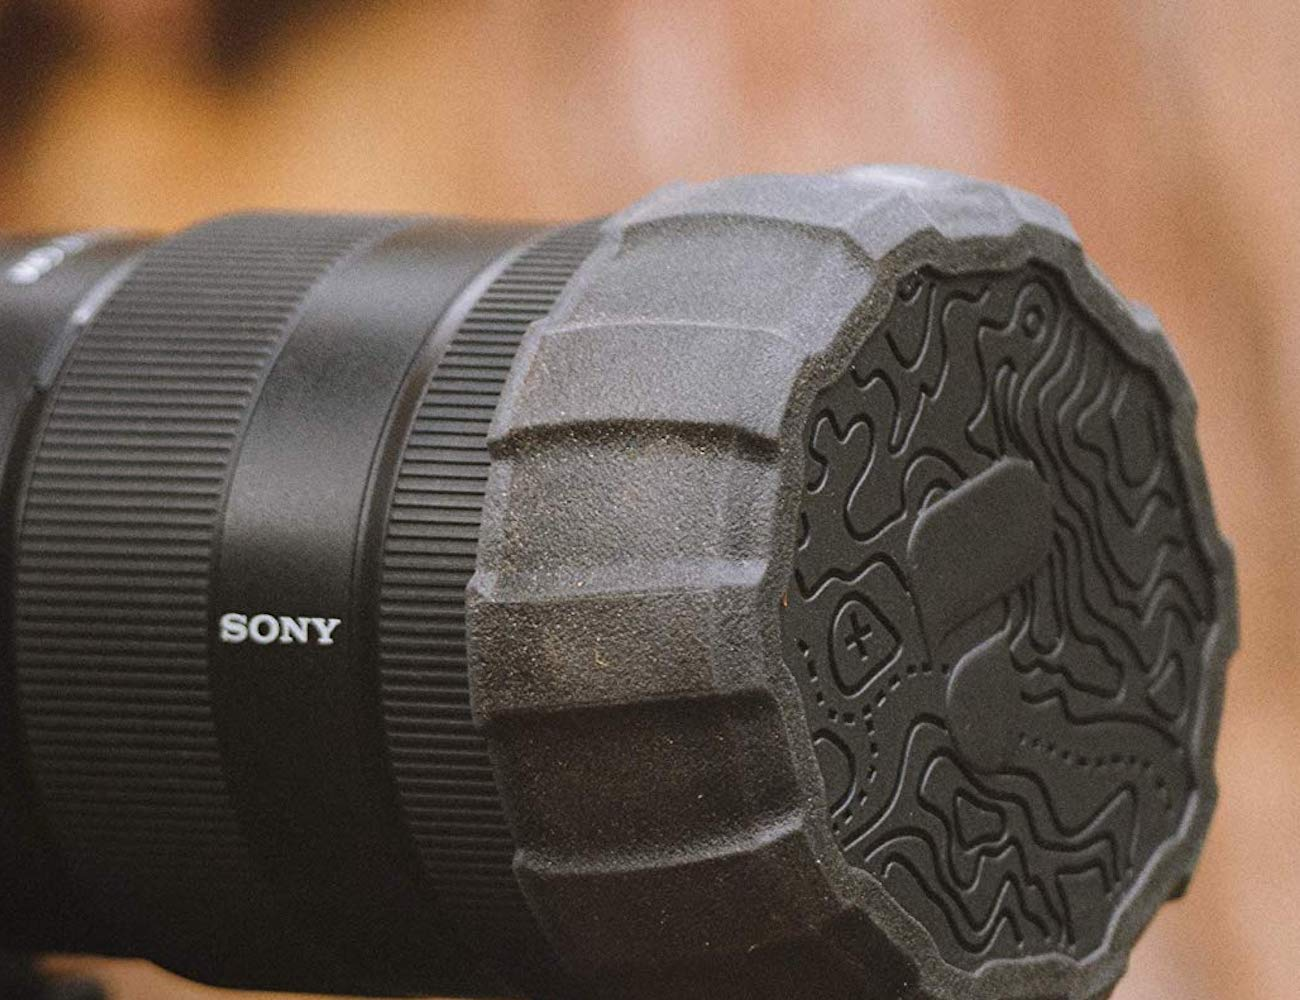 PolarPro Defender Rugged Lens Cover protects the front of your lens